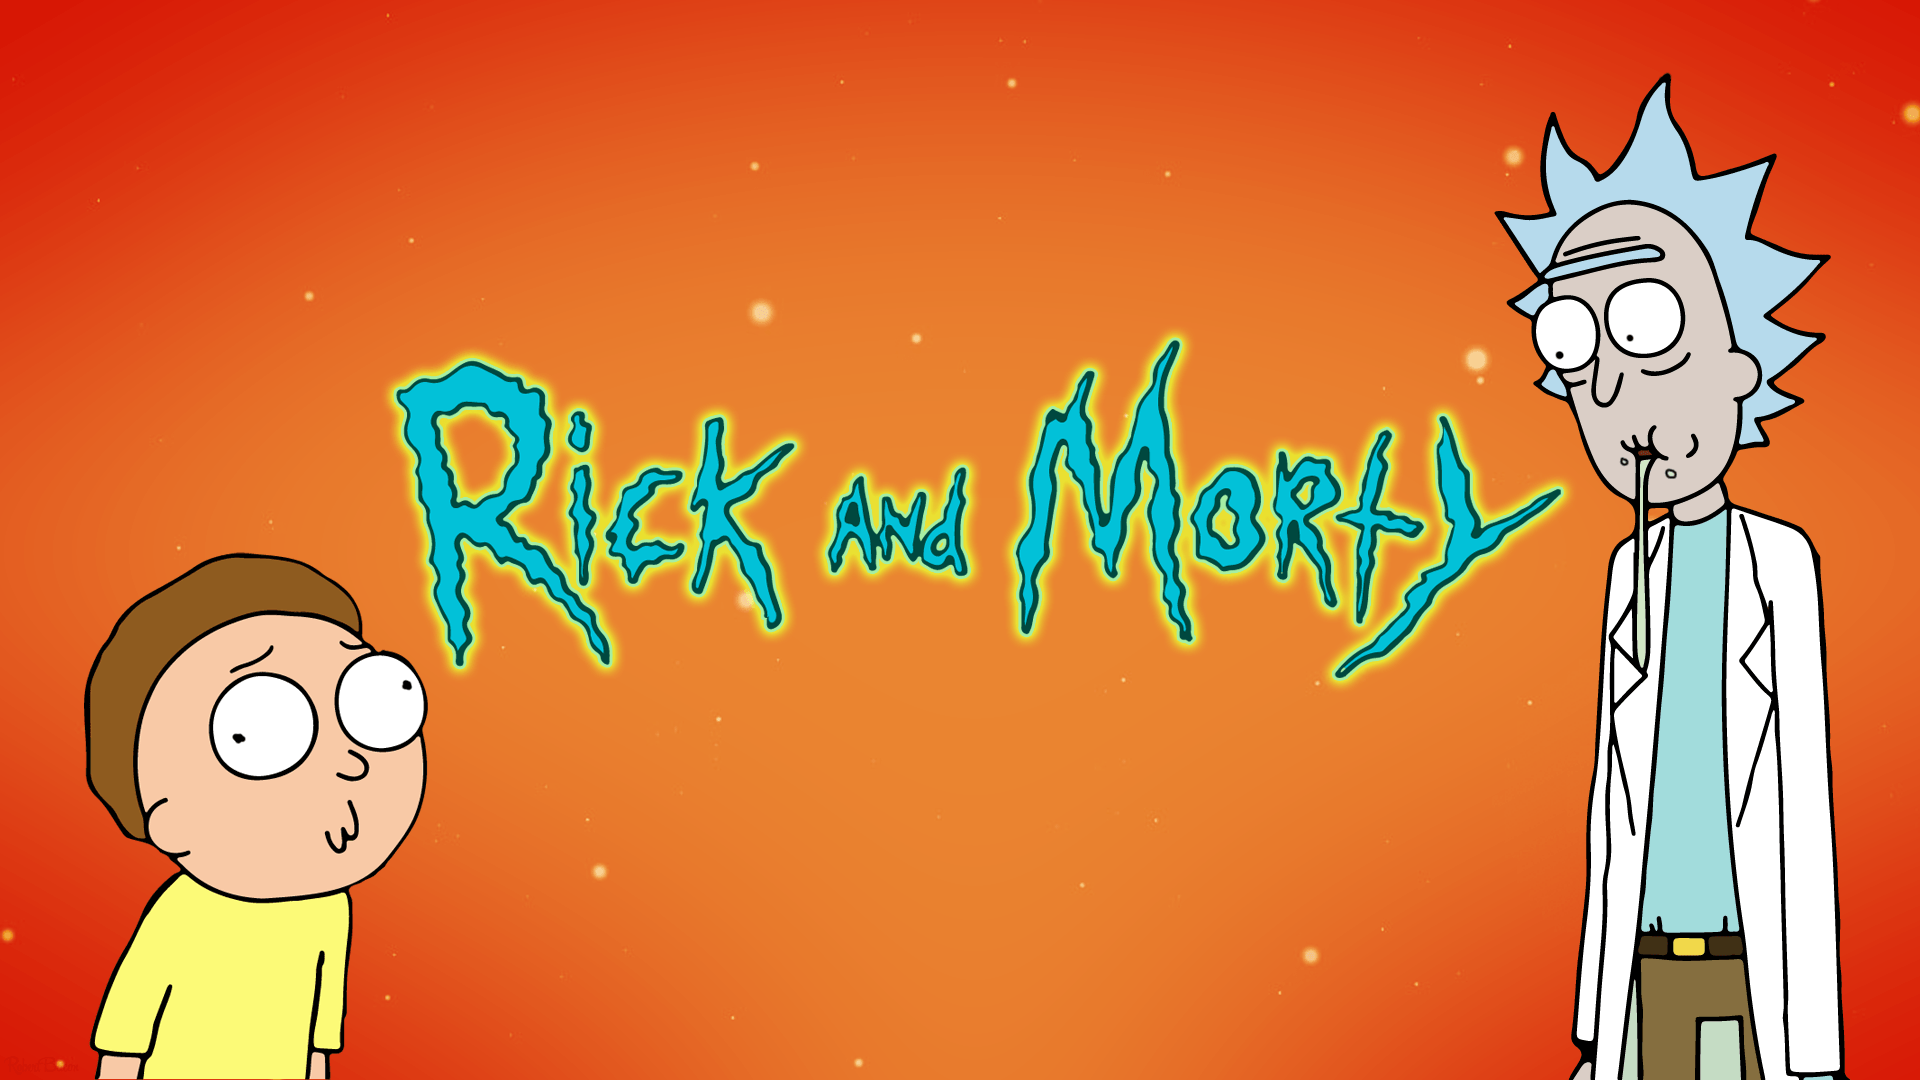 Rick and Morty Wallpapers, 1920x1080 - Album on Imgur